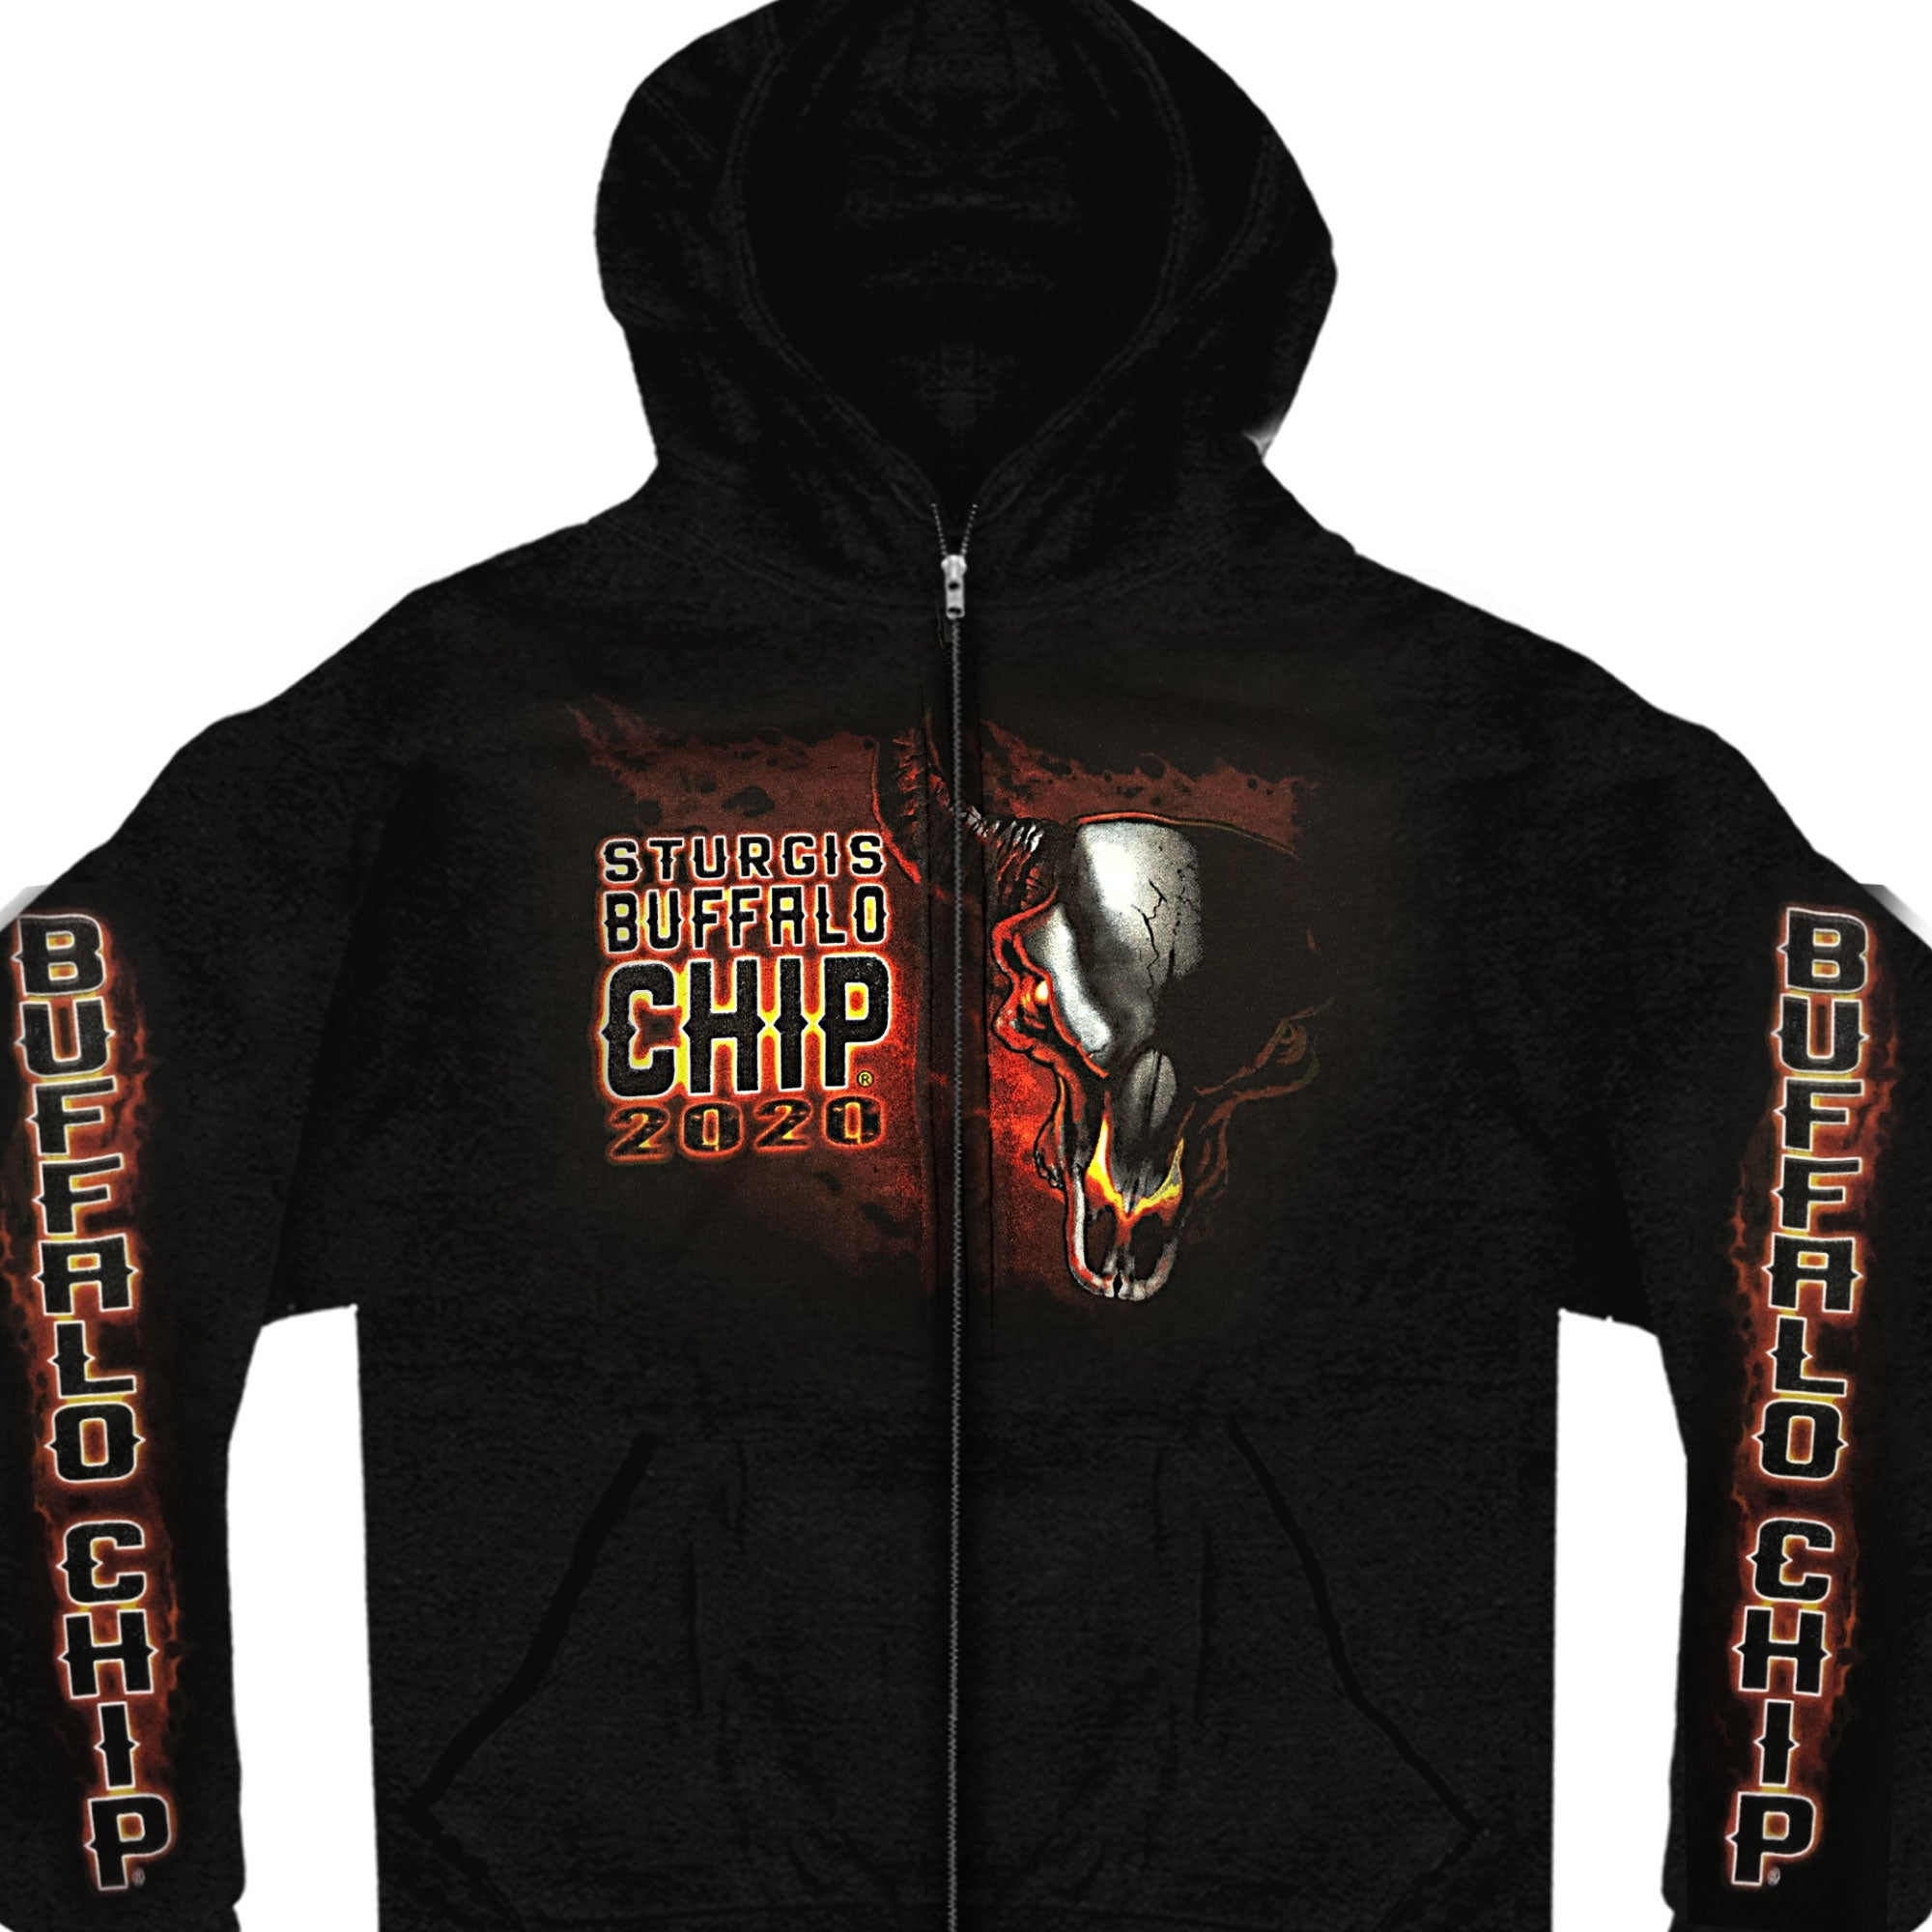 Official Sturgis Buffalo Chip 2020 Fire Eyes Hooded Sweat Shirt